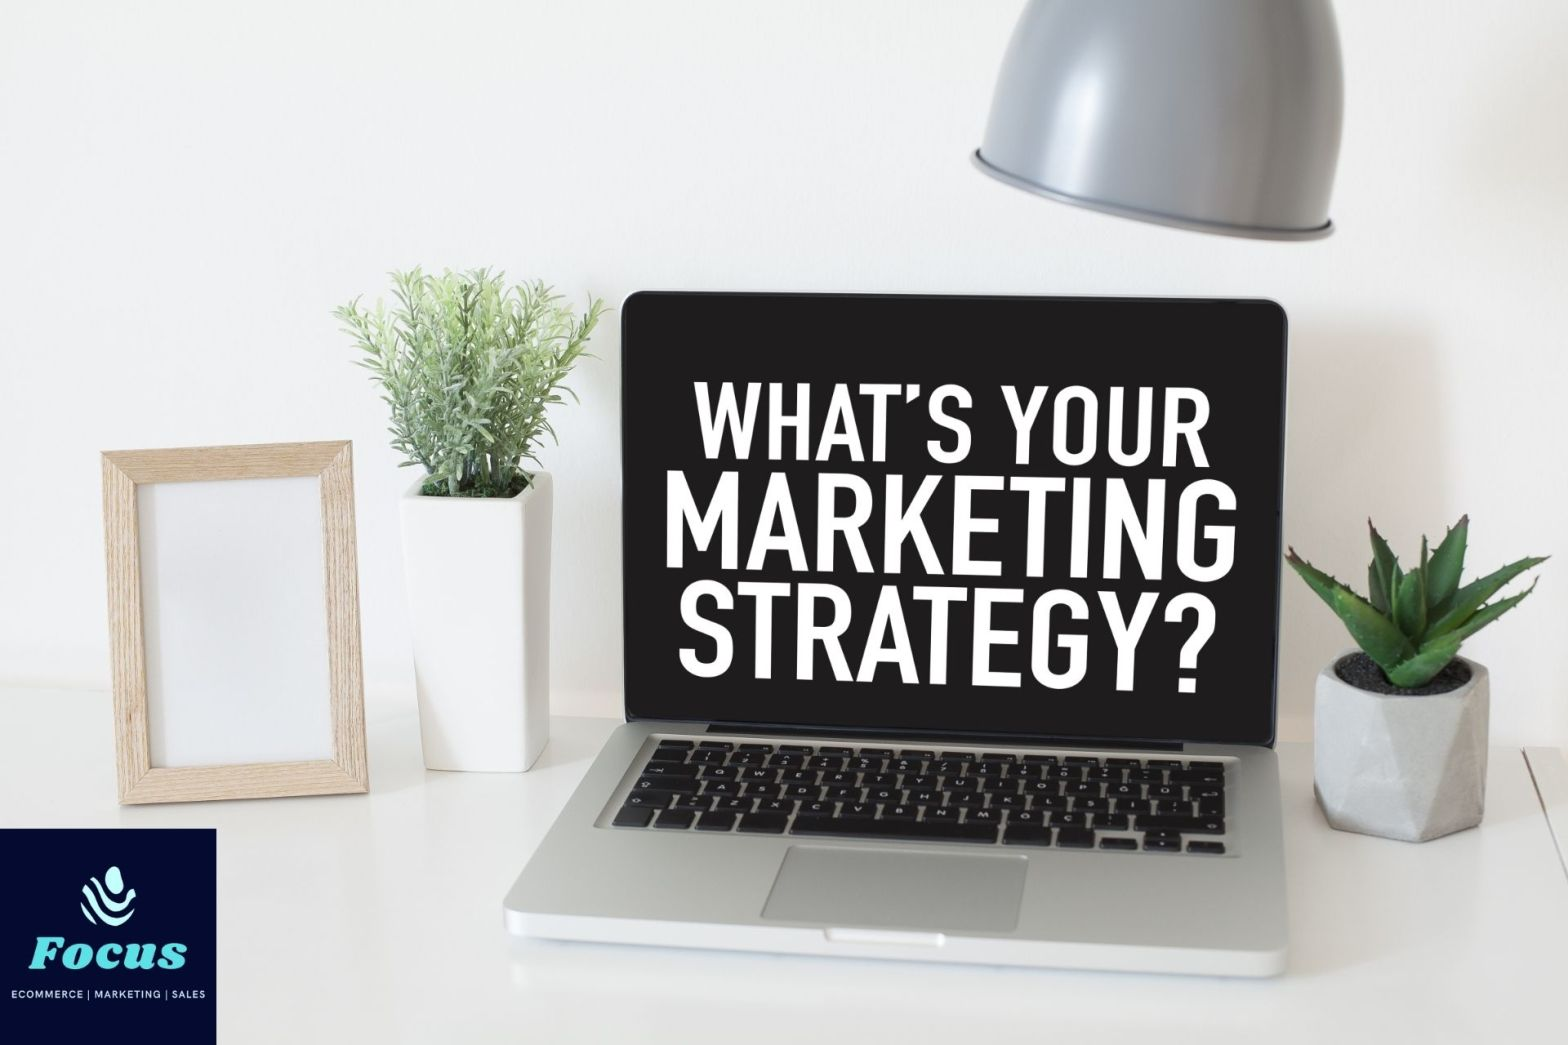 Creating a Content Strategy| Focus Ecommerce and Marketing